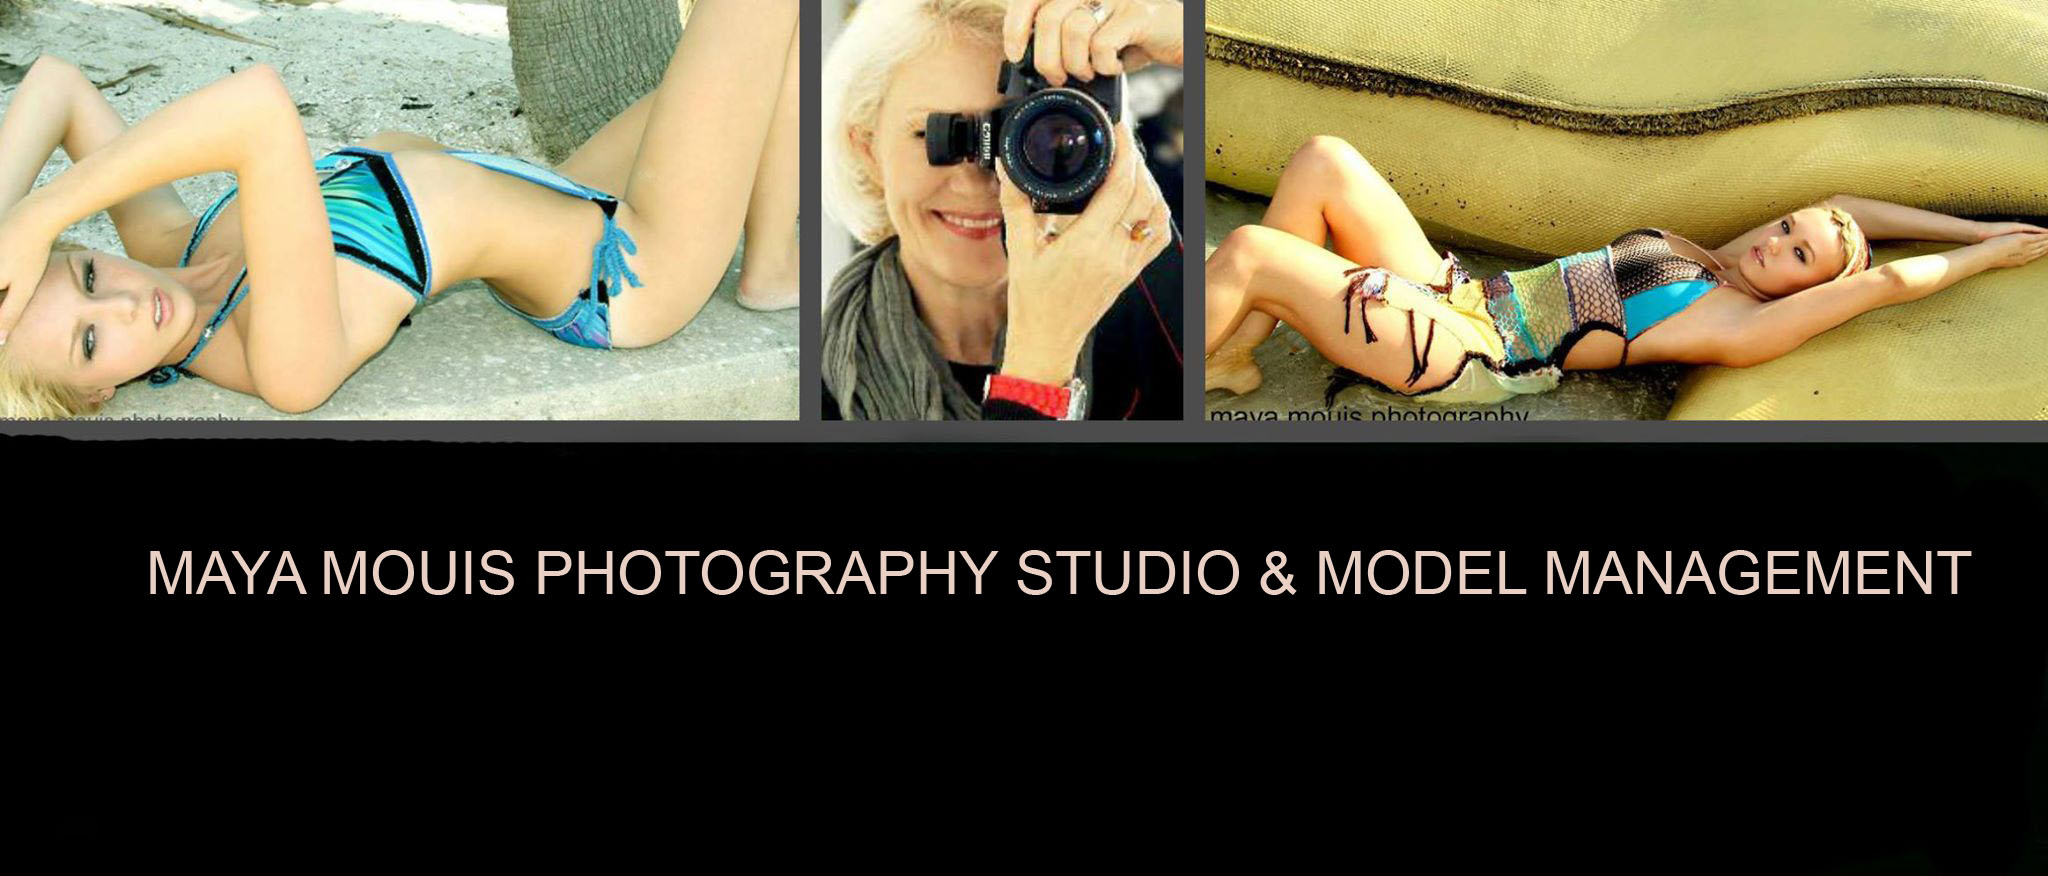 MAYA MOUIS PHOTOSTUDIO & Models Management